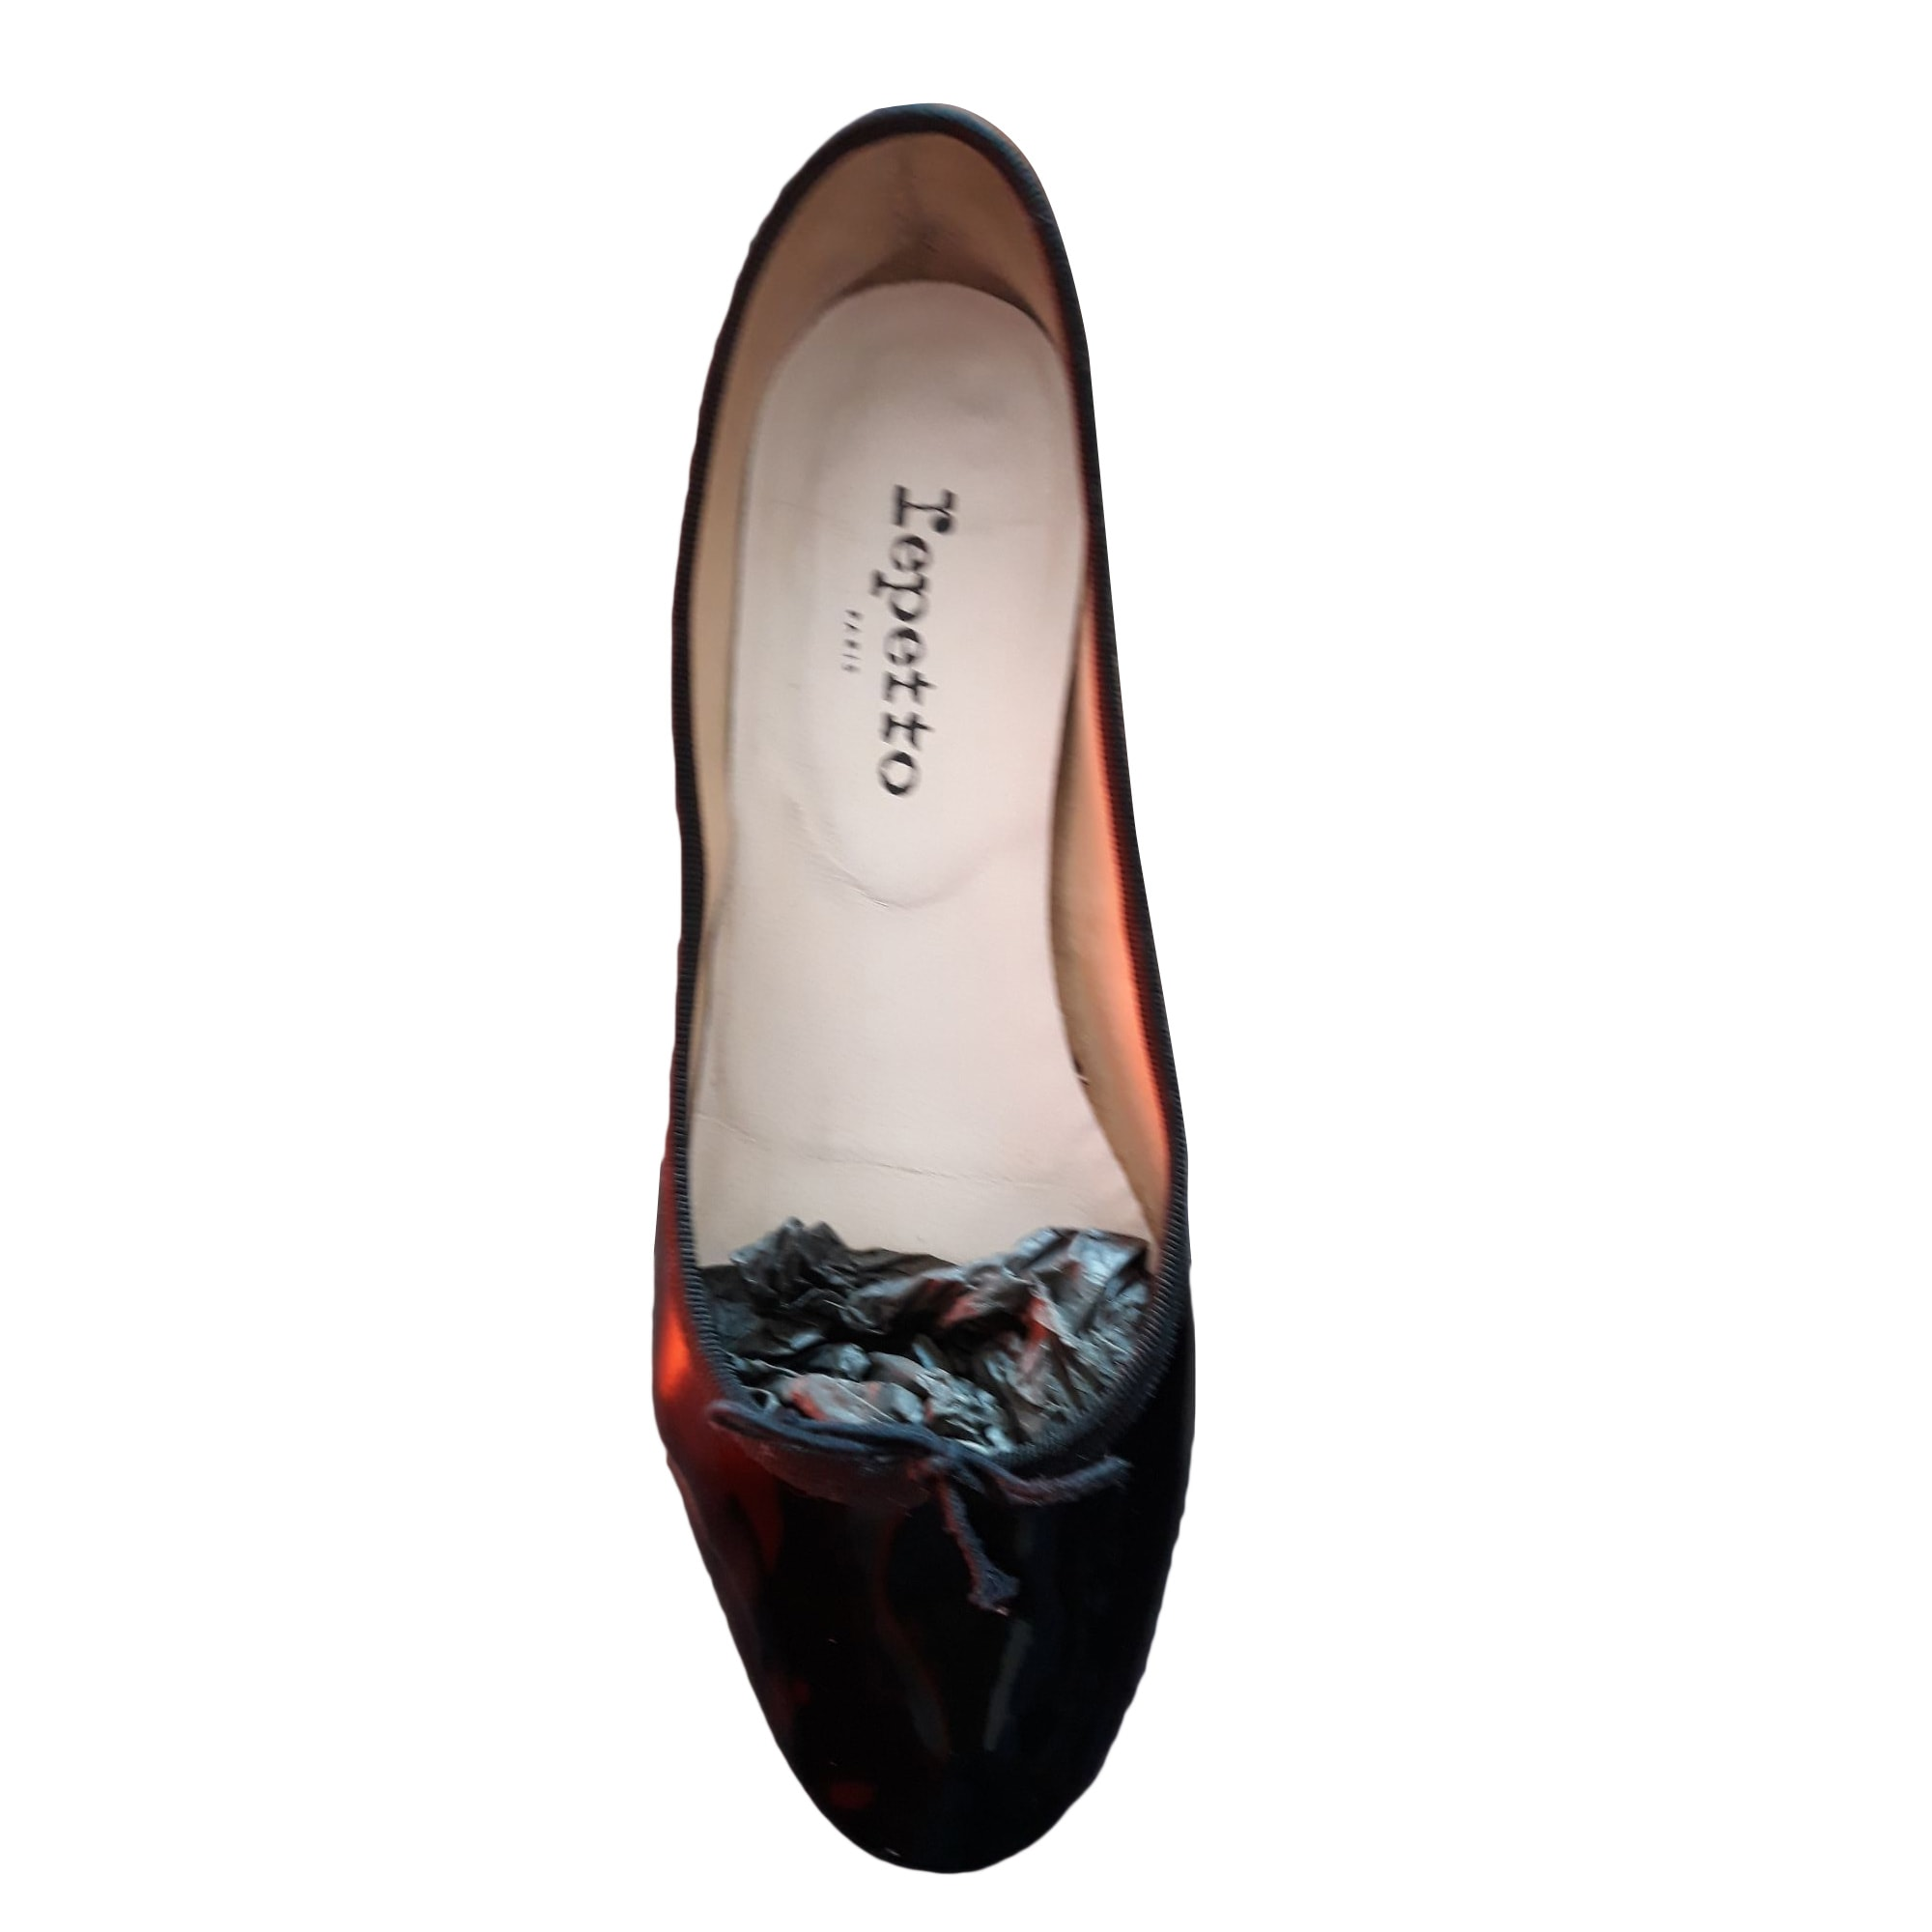 Ballerines REPETTO Noir